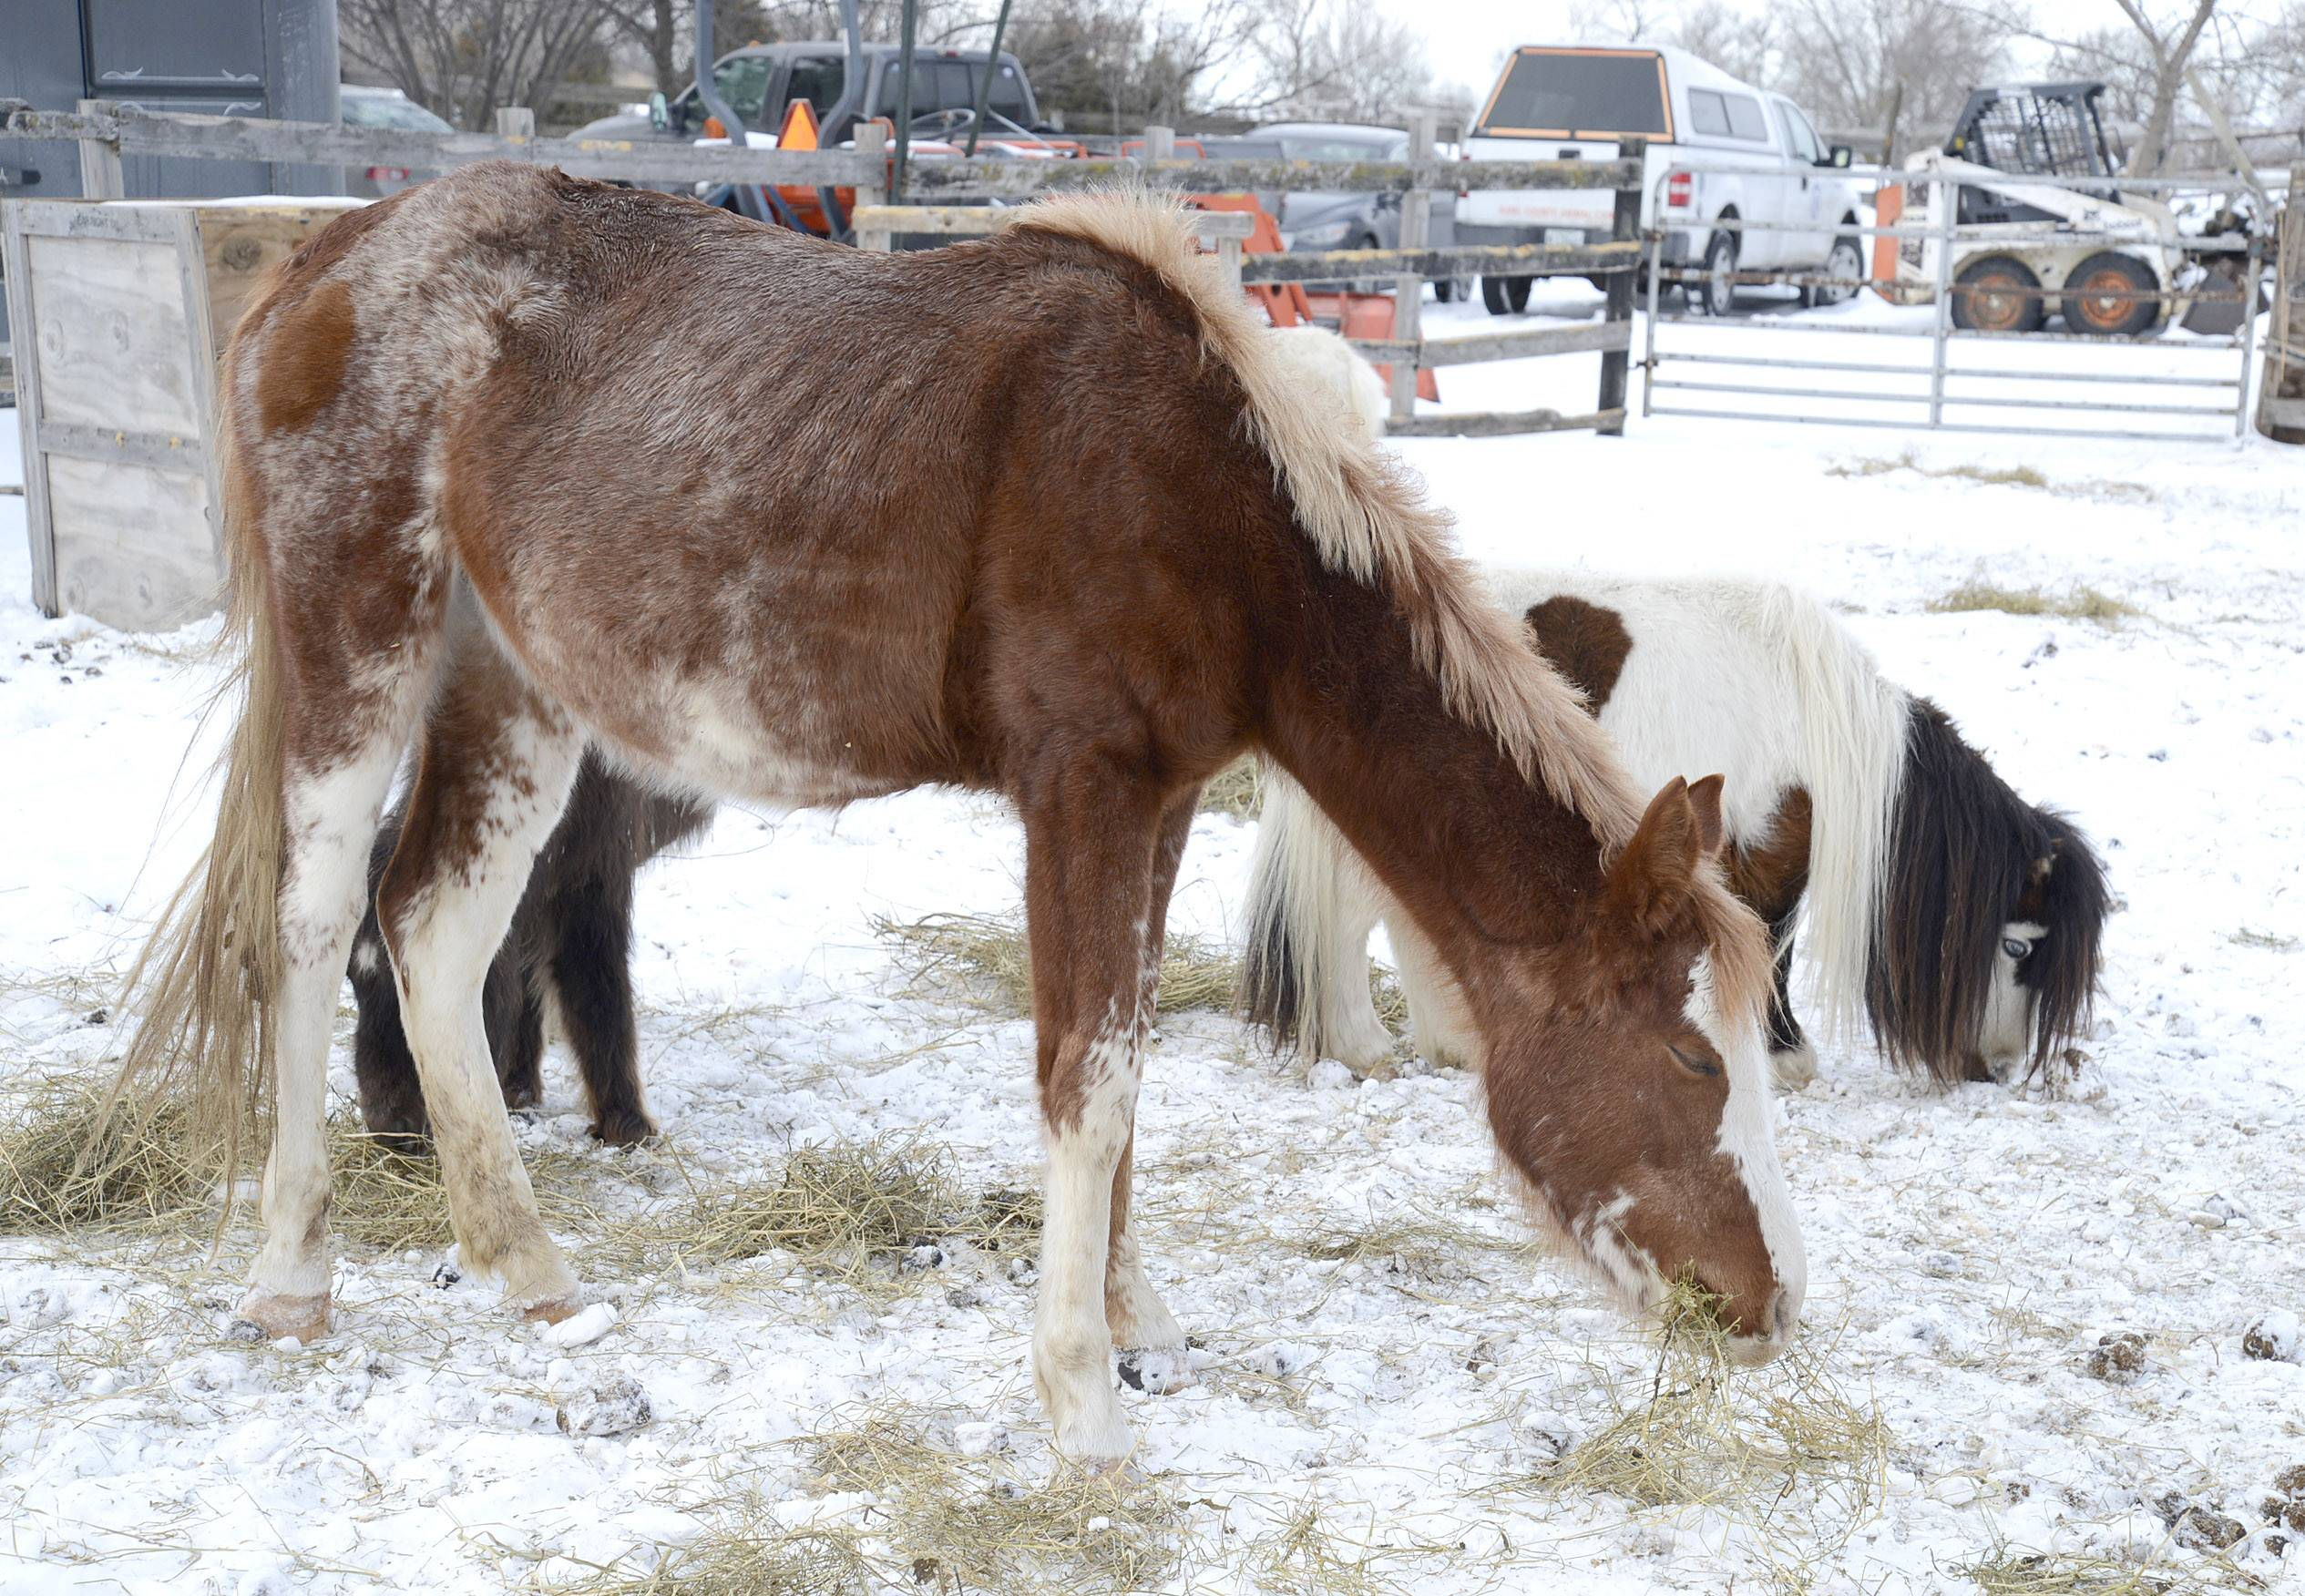 The owner of these horses, photographed in March, was accused of neglecting them. Now her attorney says the Kane County animal control director at the time lied about one of her horses being dead.